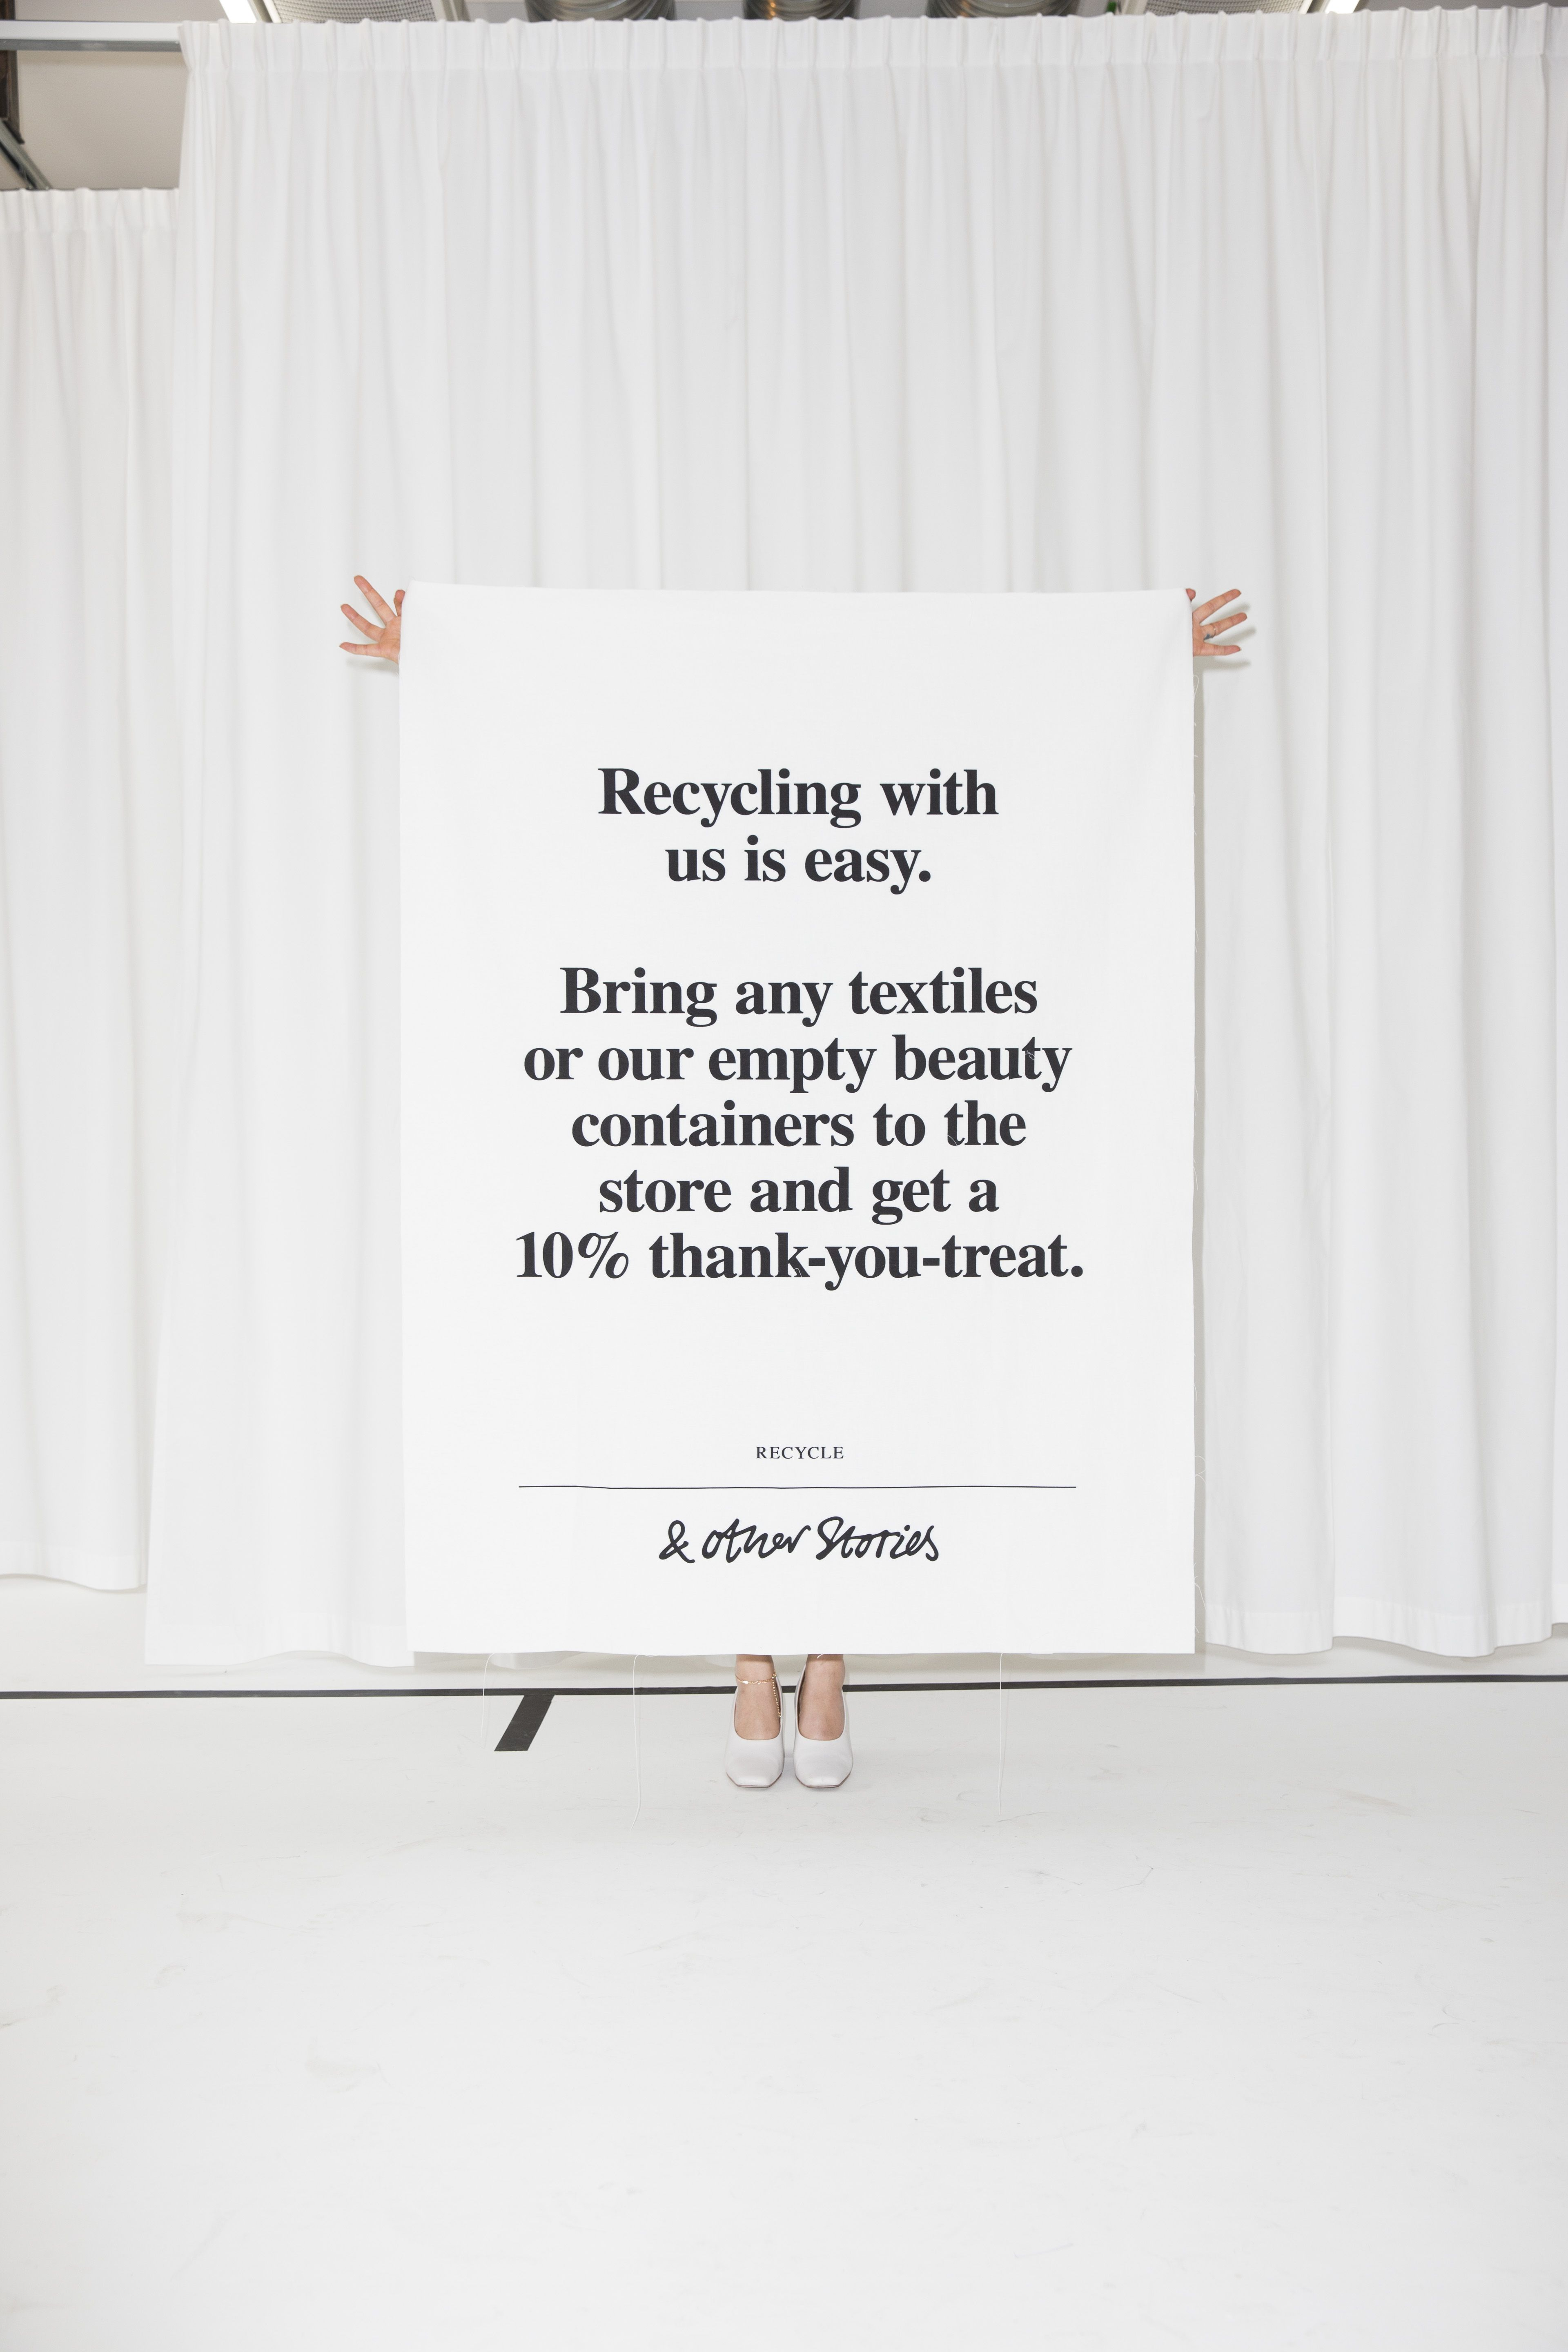 other stories recycling with us is easy